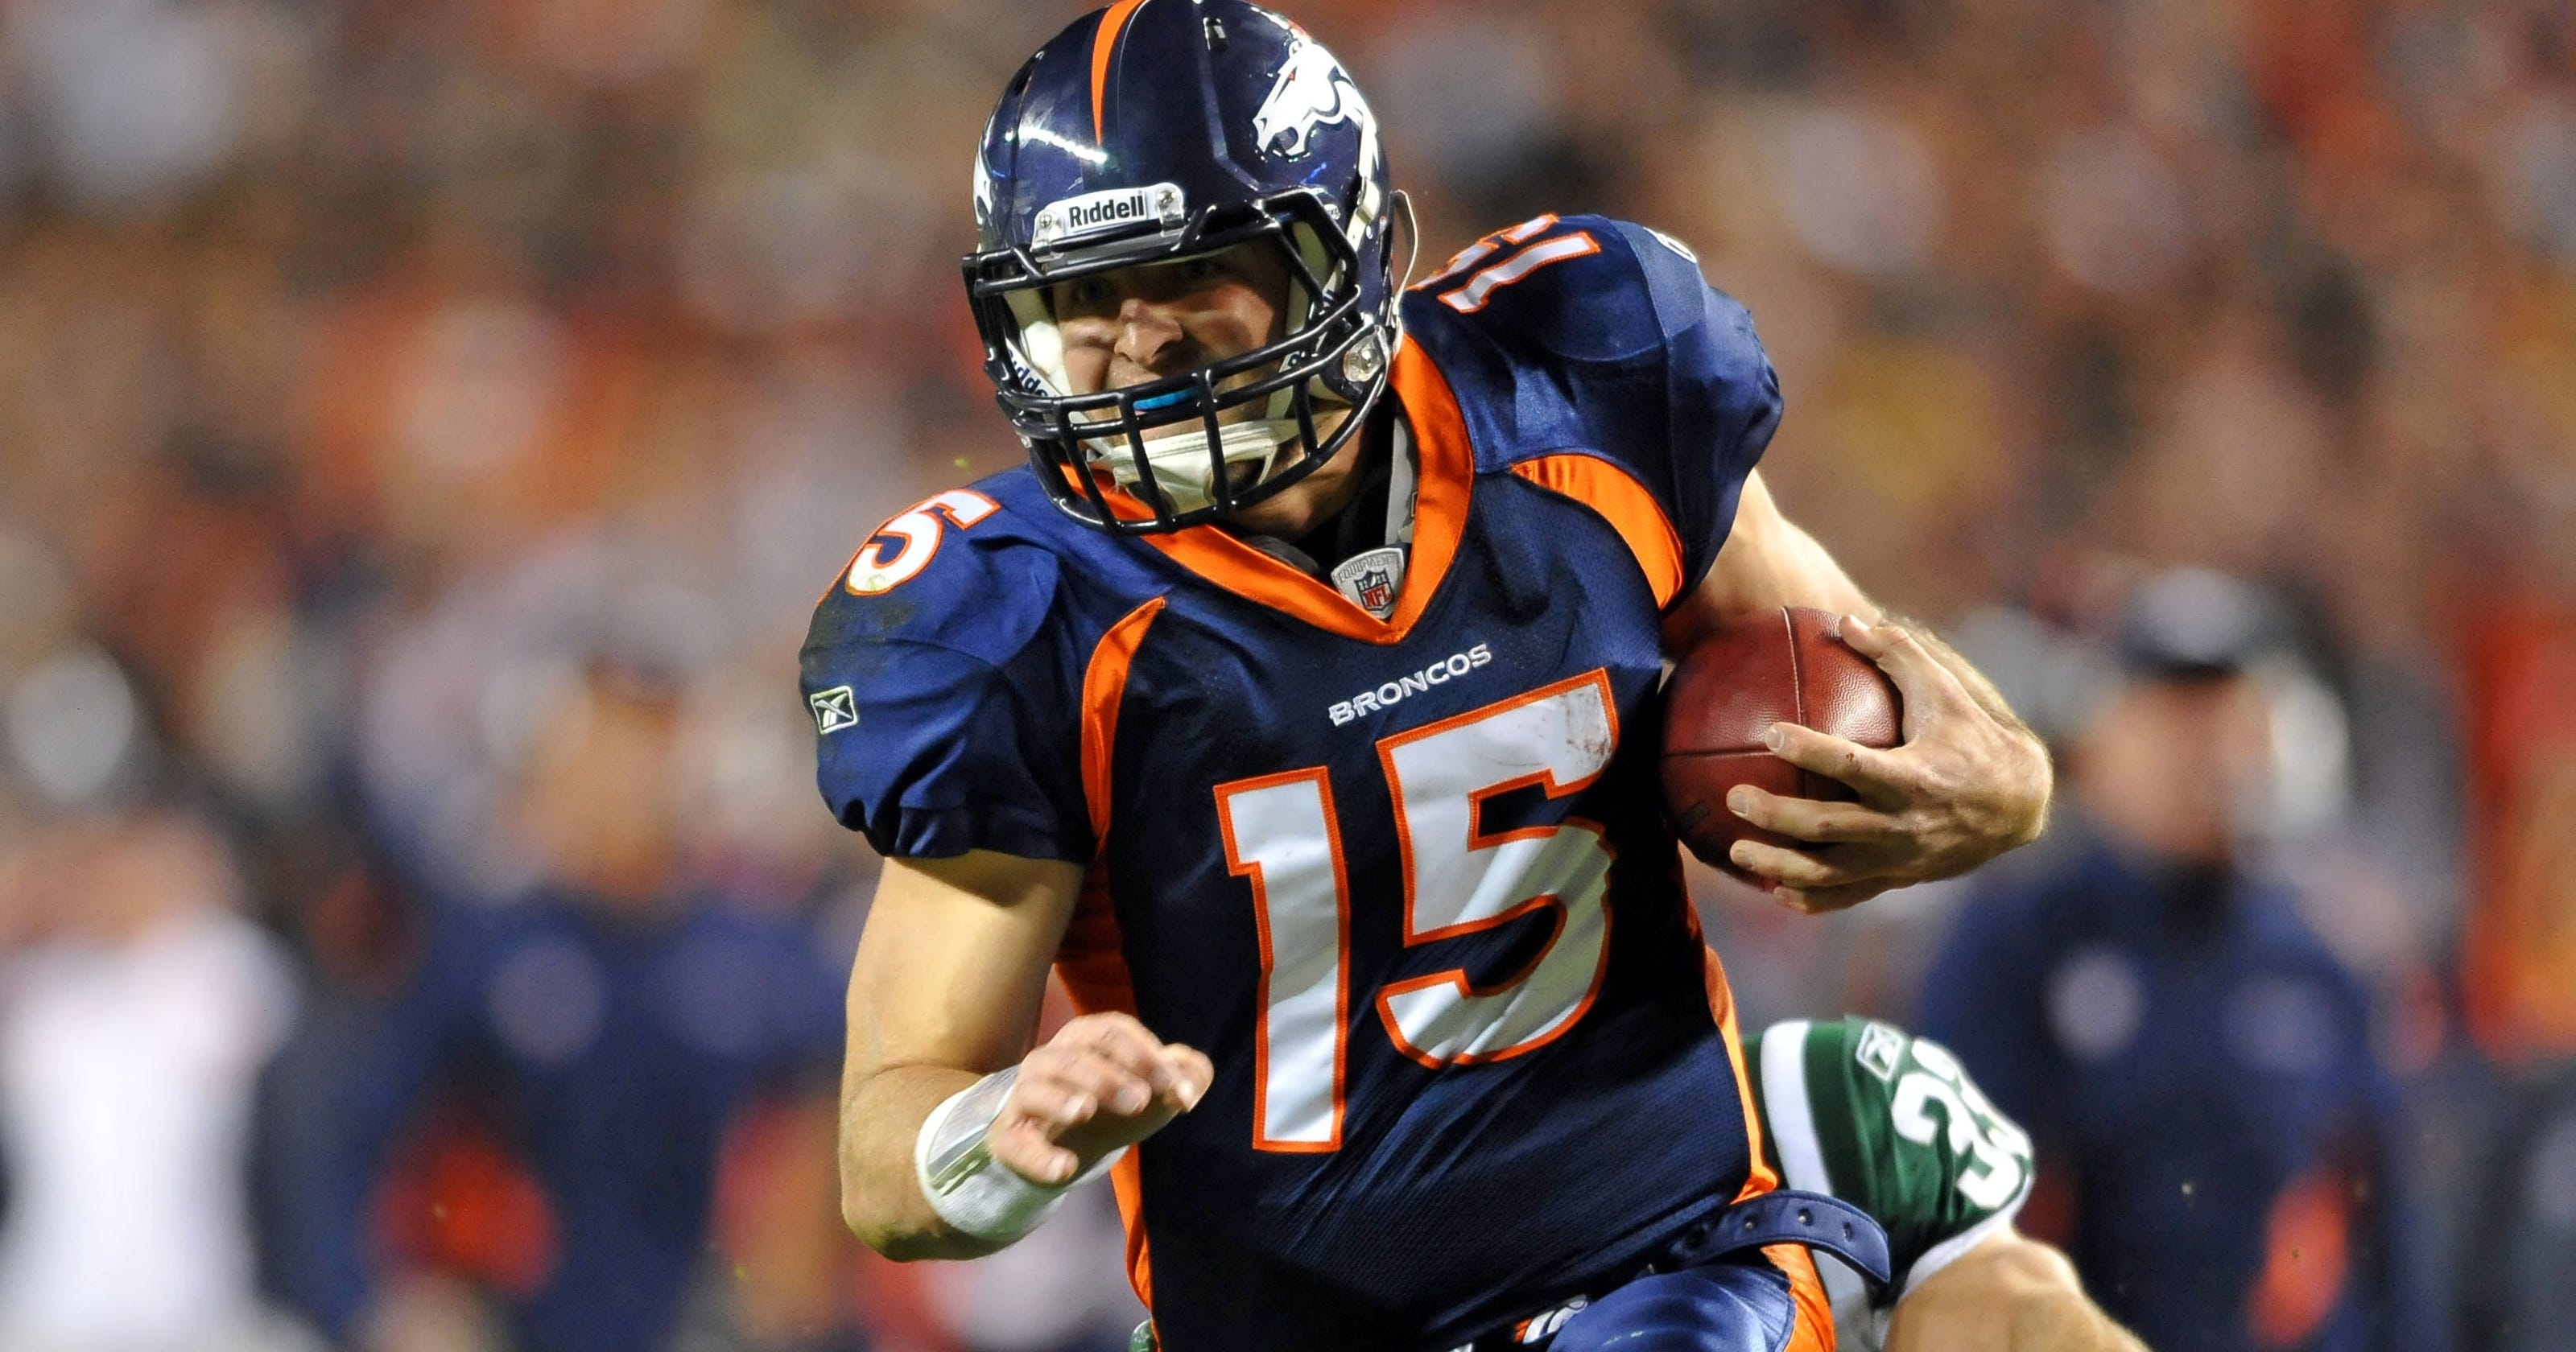 Unnamed Broncos agree with Jets  Tim Tebow not an NFL quarterback 8ee8ebd6a